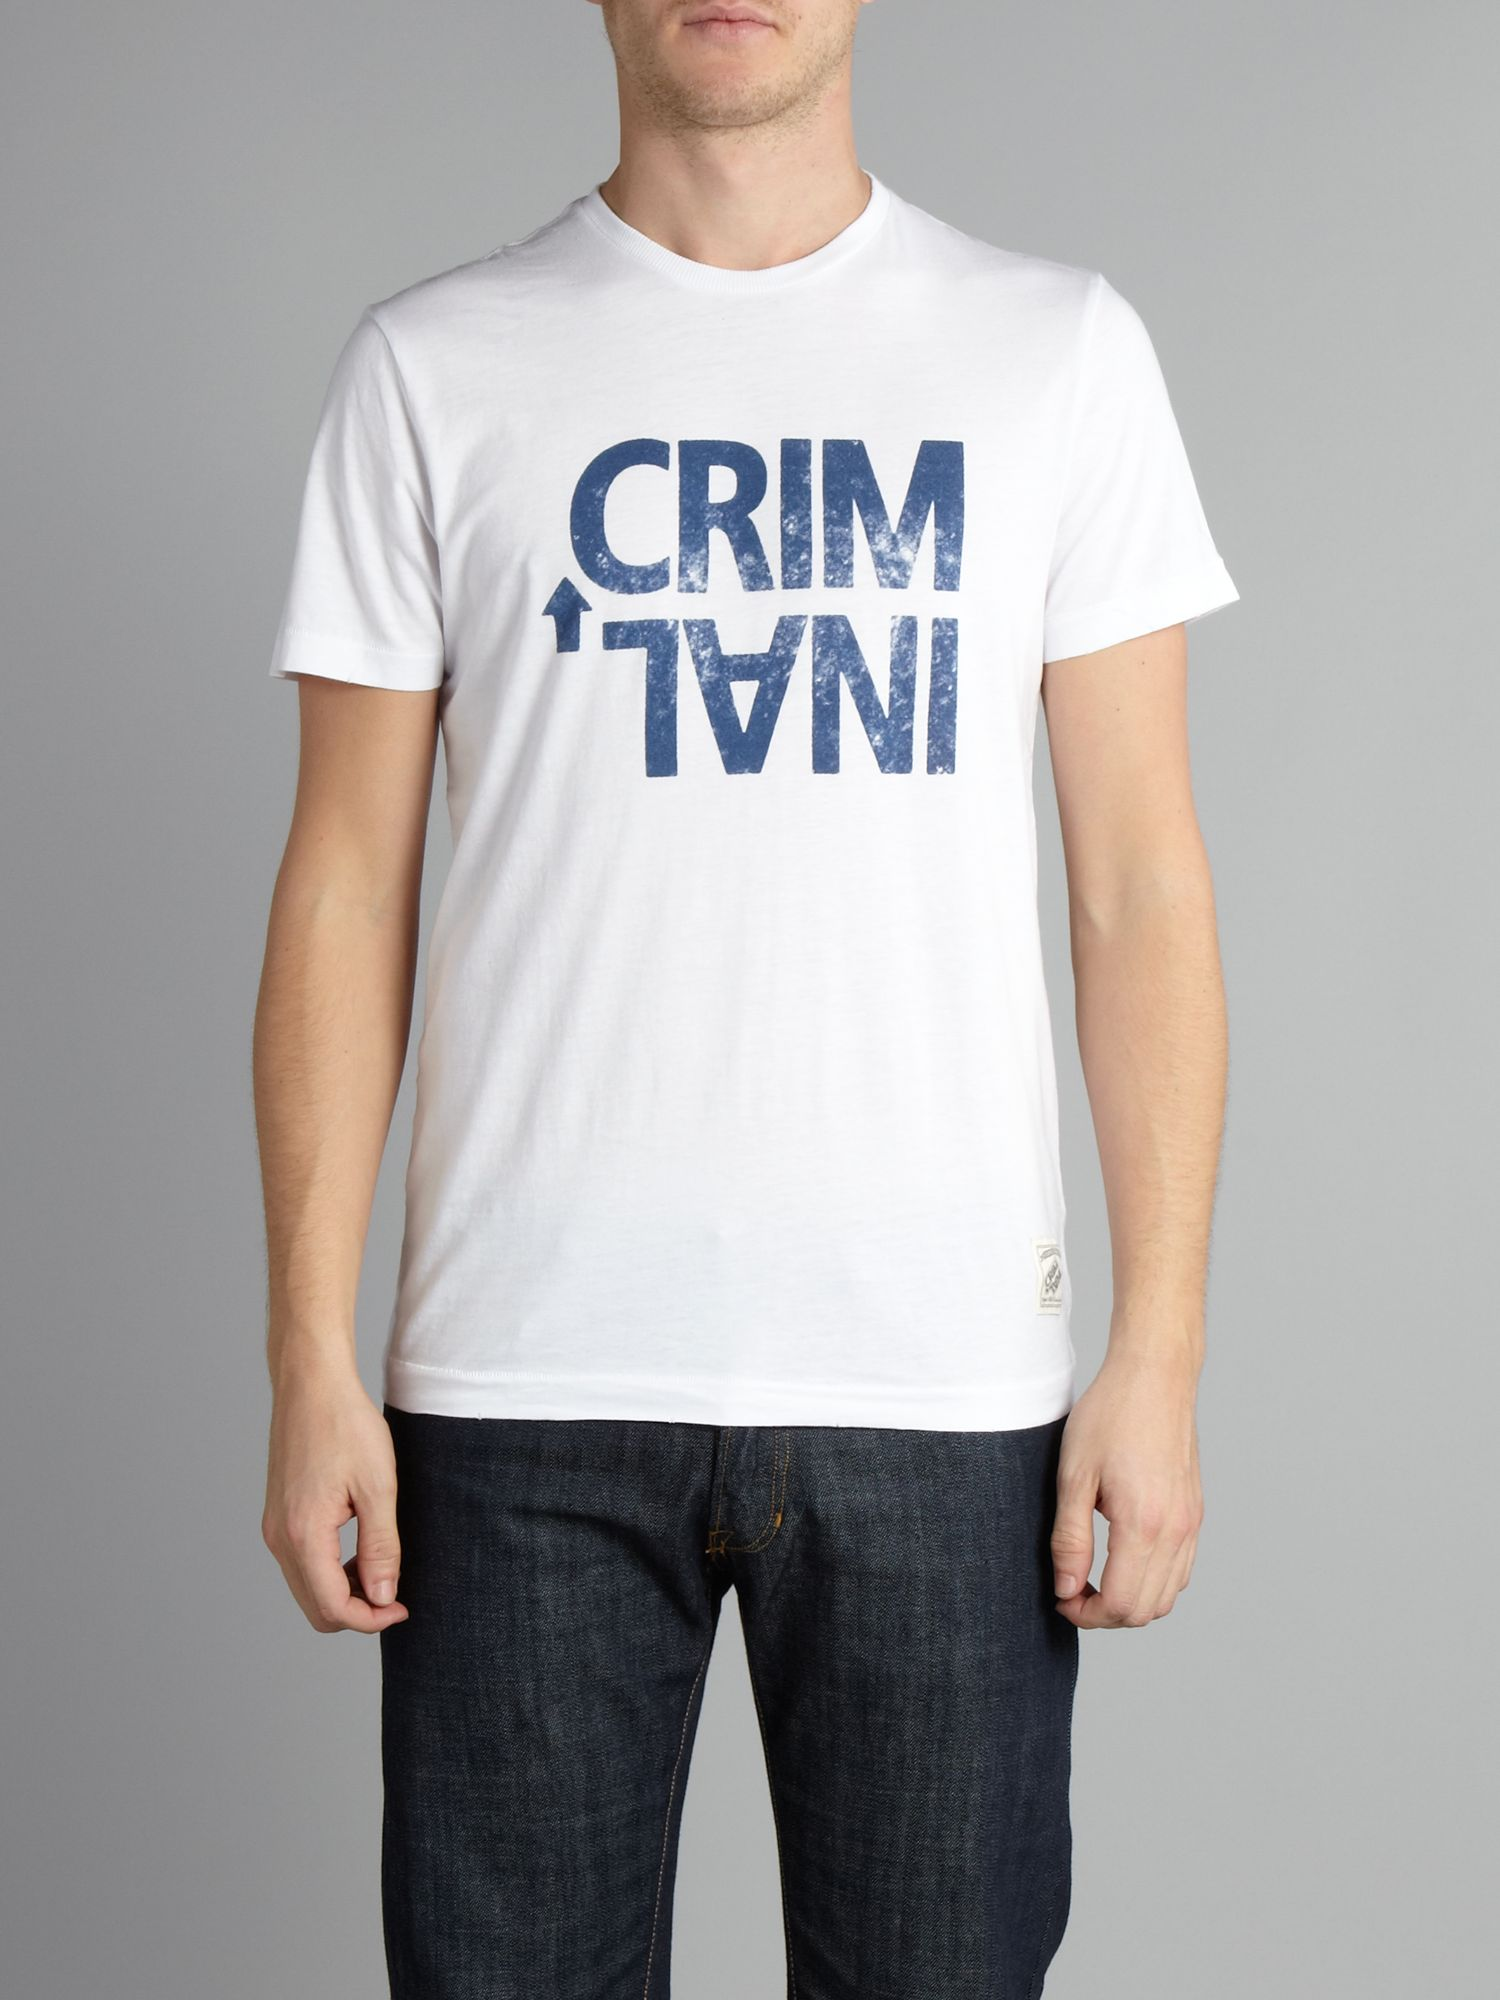 Criminal Stamp T-shirt - White L,L,S,S,XL,XL,M,M product image